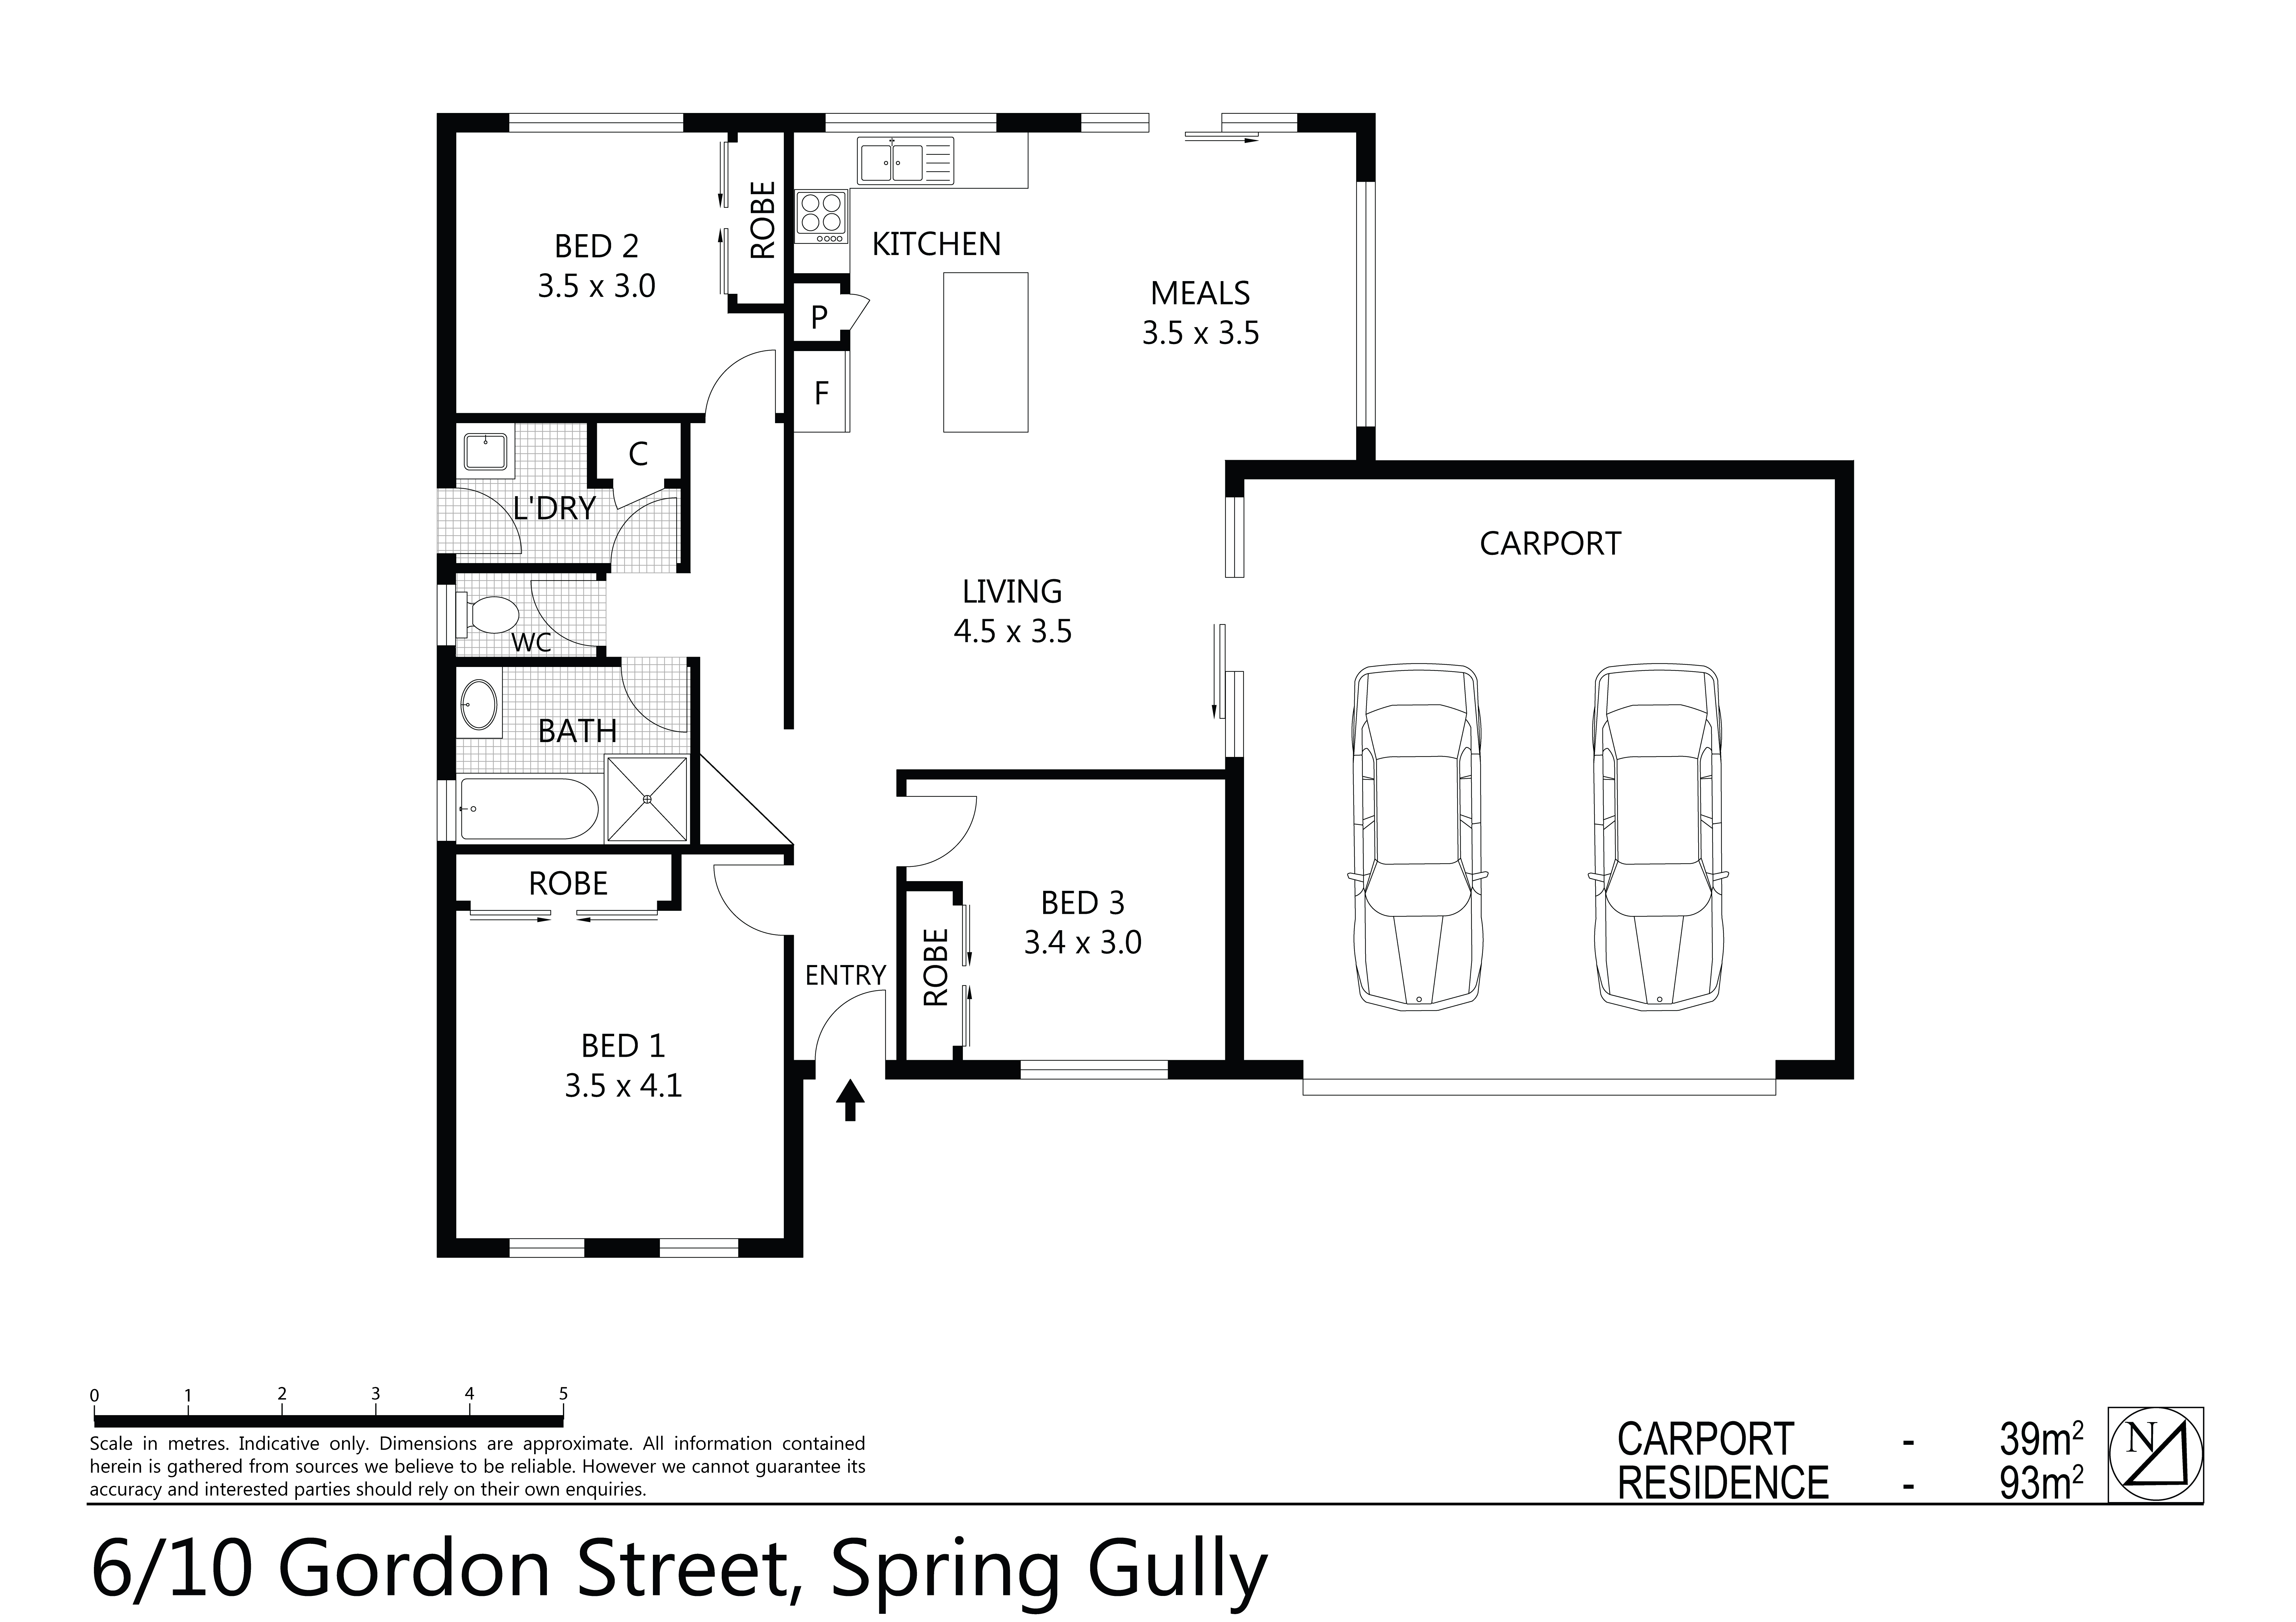 Mckean Mcgregor 6 10 Gordon Street Spring Gully Vic 3550 Schematic 05 September 2018 93 Sqm